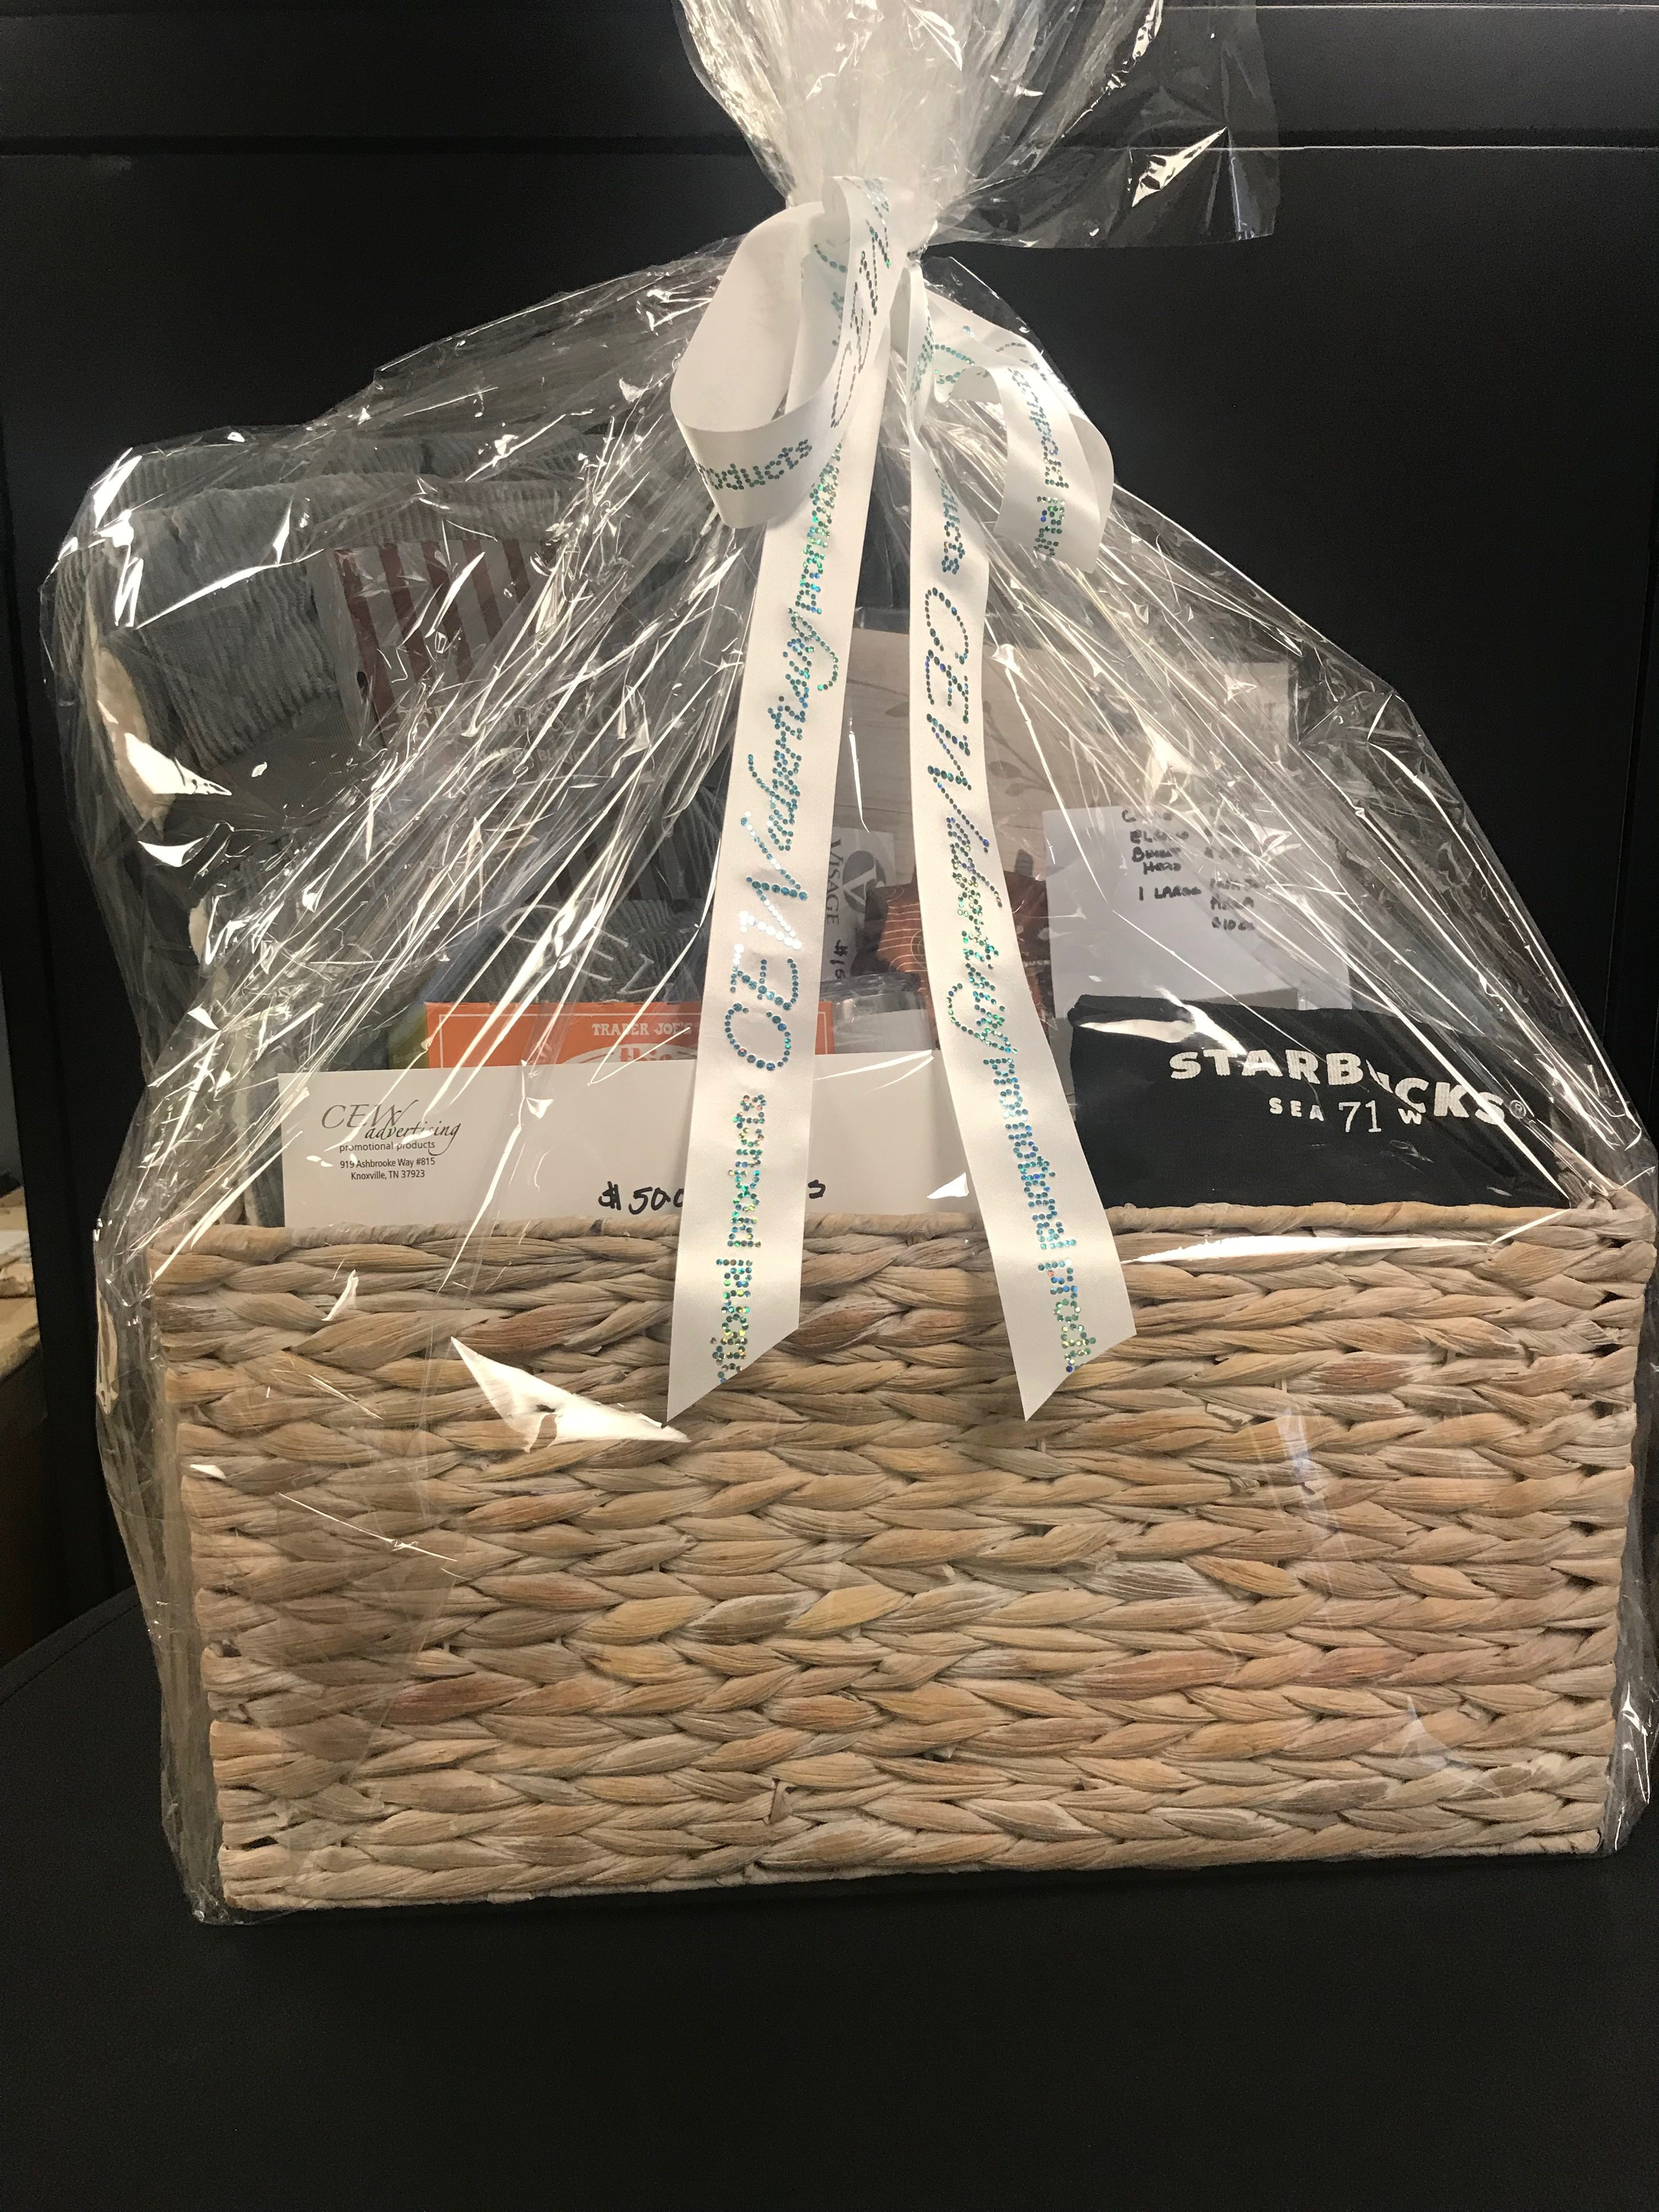 CEW Gift Basket #1 (Retail Value $505.00)